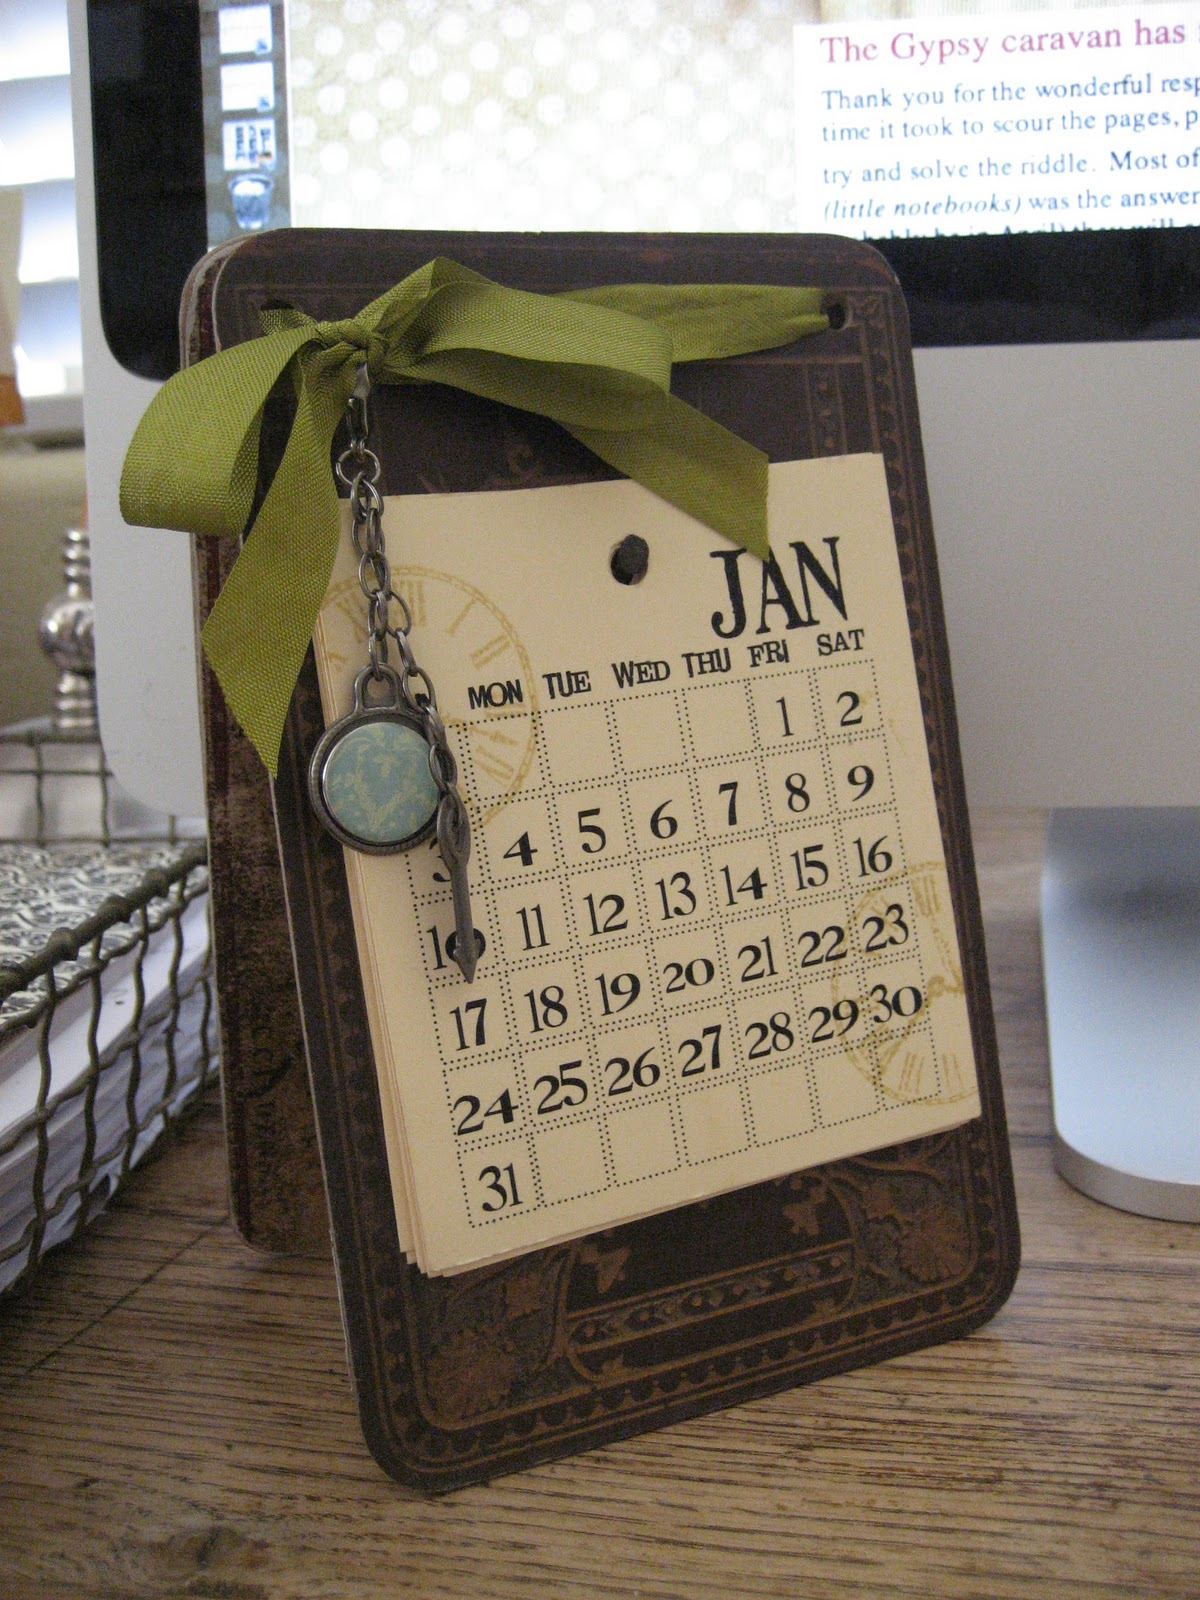 Diy Calendar Binding : One lucky day best wishes for the new year